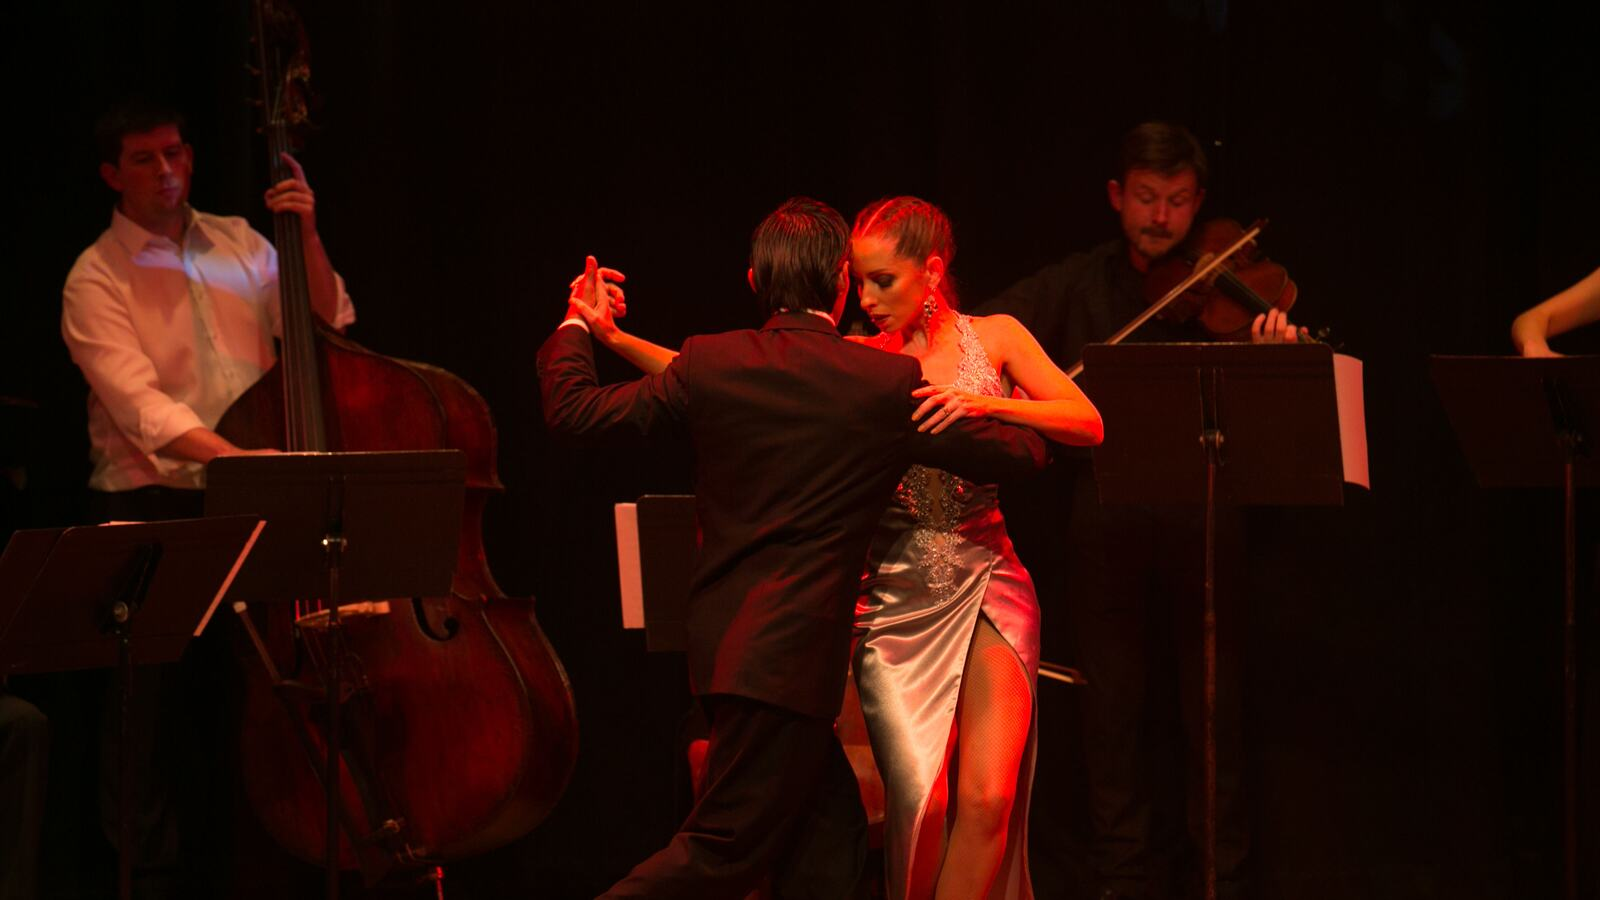 Tangos for Angels and Demons, Tango dancers